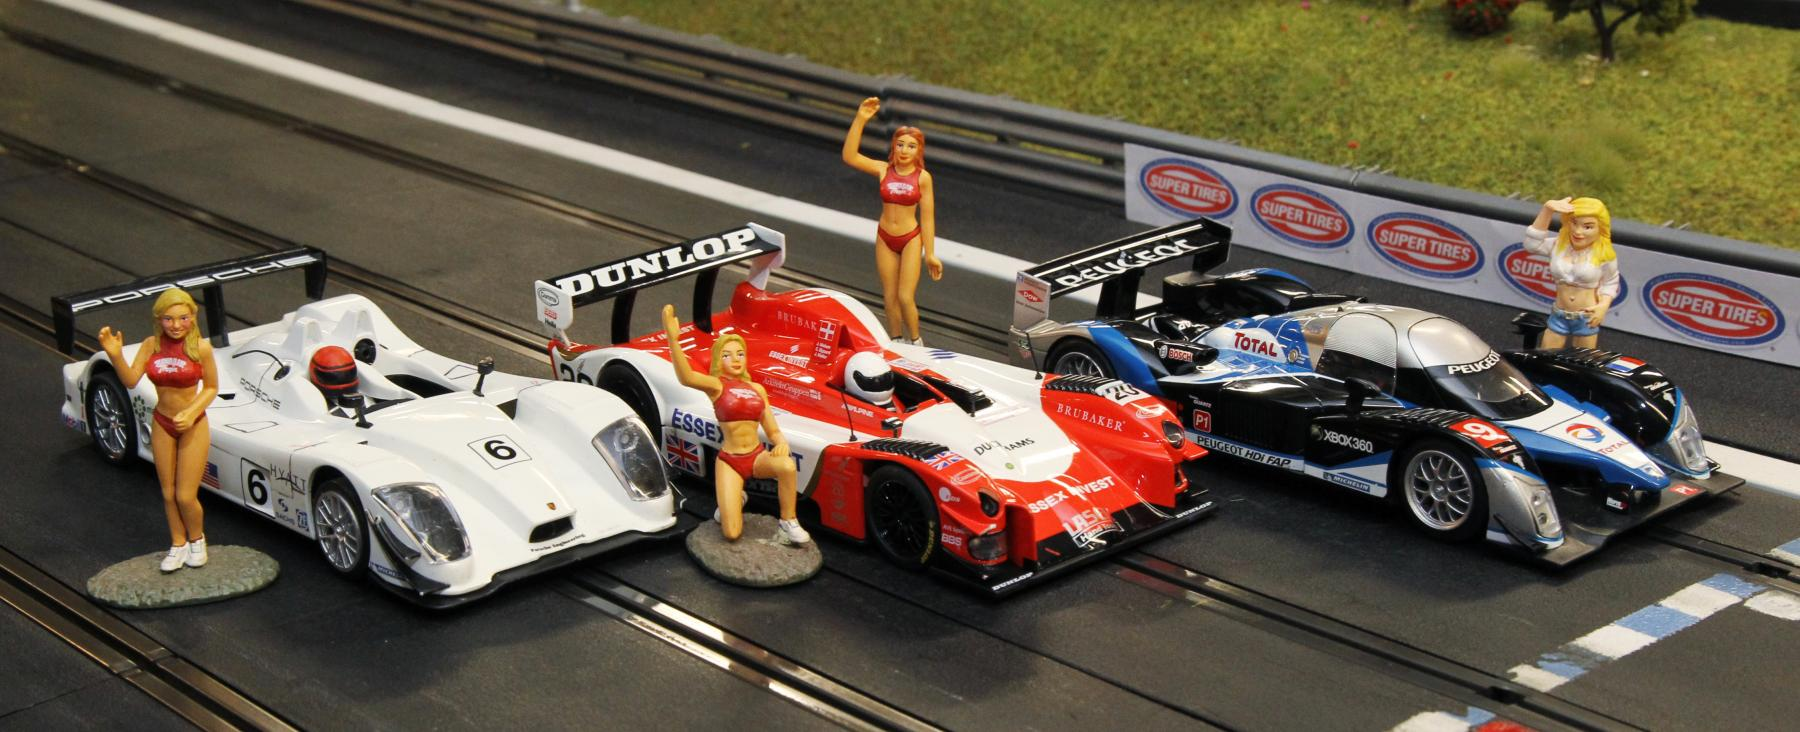 151128Goodspeed-045LMP1Winners.jpg